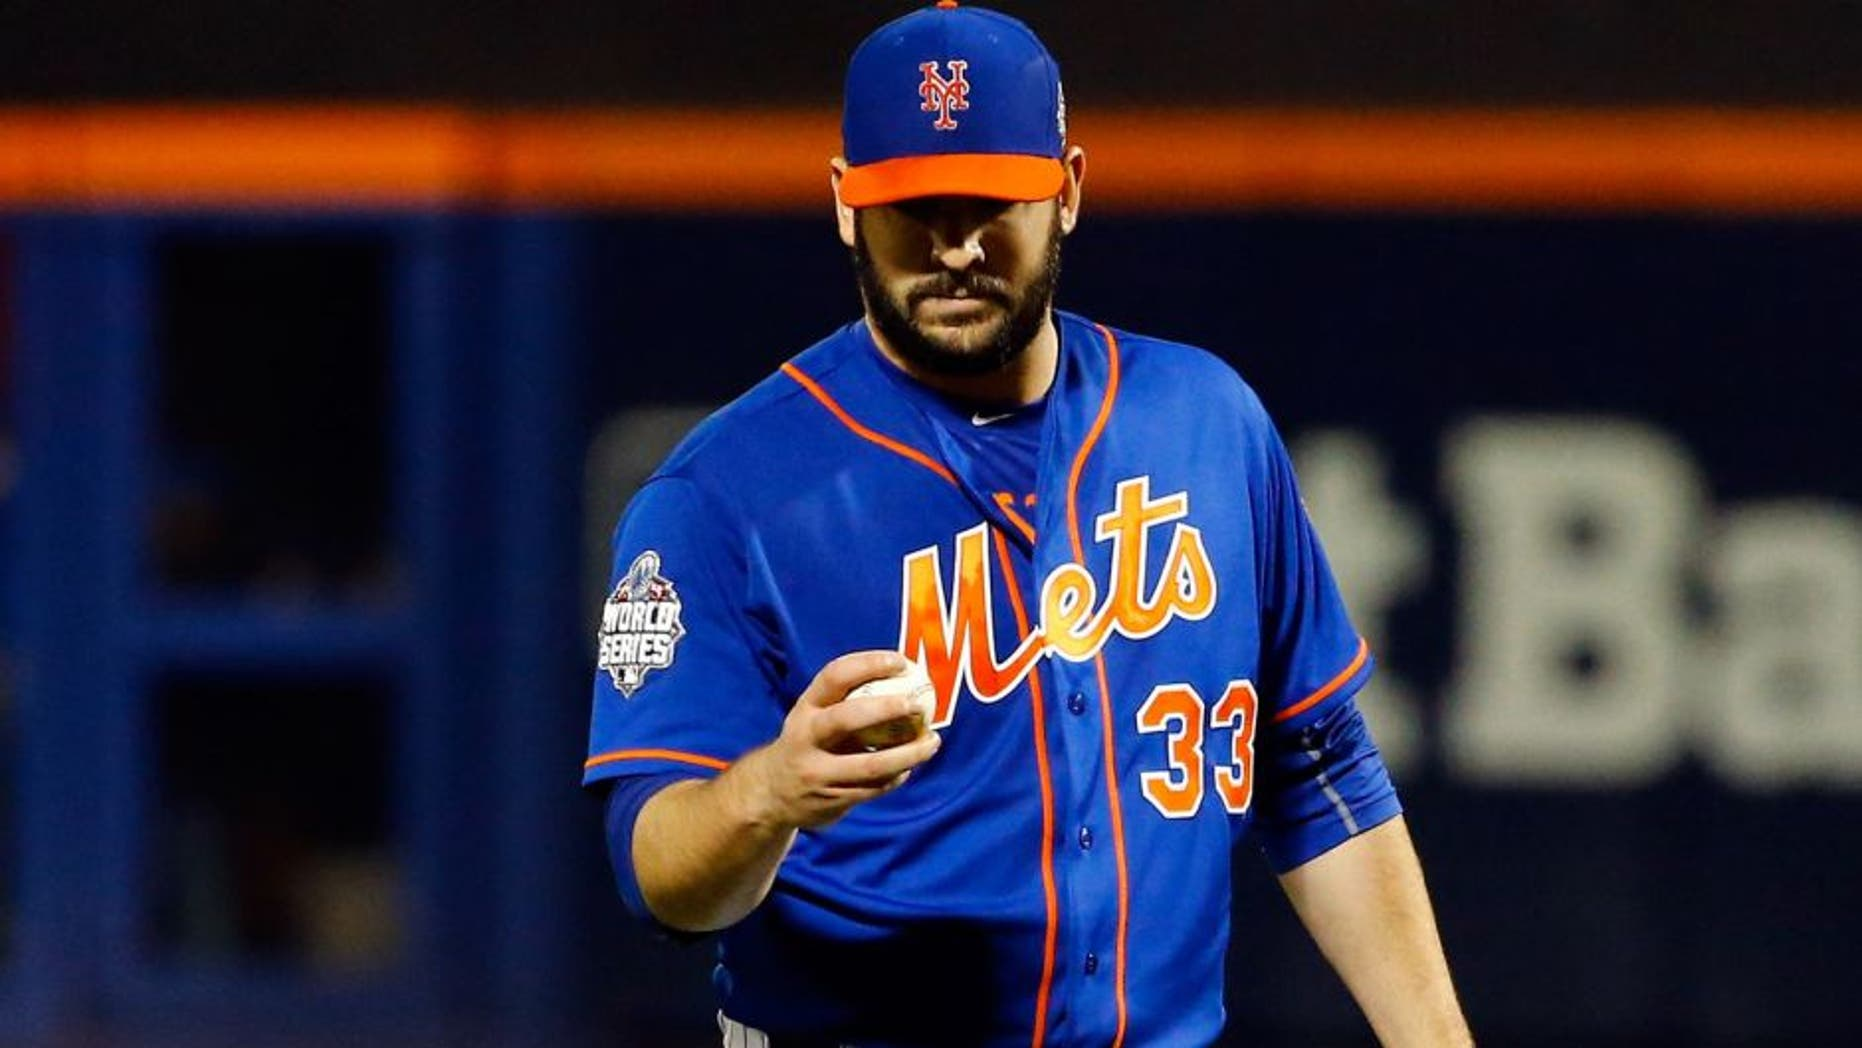 NEW YORK, NY - NOVEMBER 01: Matt Harvey #33 of the New York Mets reacts in the ninth inning against the Kansas City Royals during Game Five of the 2015 World Series at Citi Field on November 1, 2015 in the Flushing neighborhood of the Queens borough of New York City. (Photo by Al Bello/Getty Images)